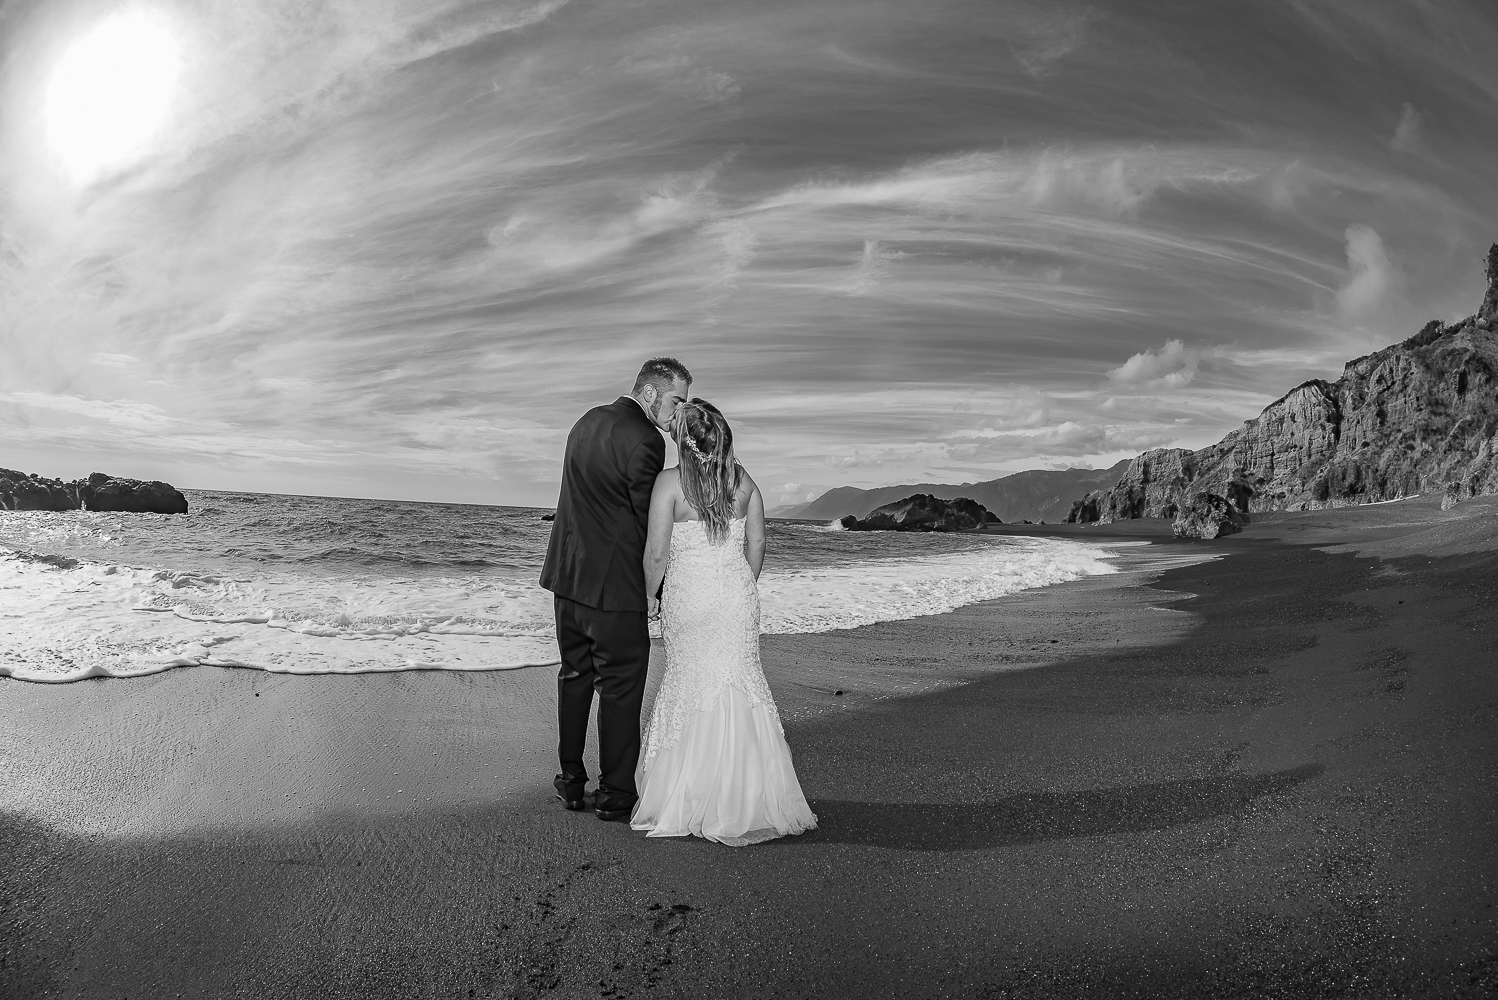 Shelter Cove-Intimate Destination beach Wedding-Parky's Pics Photography-Humboldt County_-38.jpg